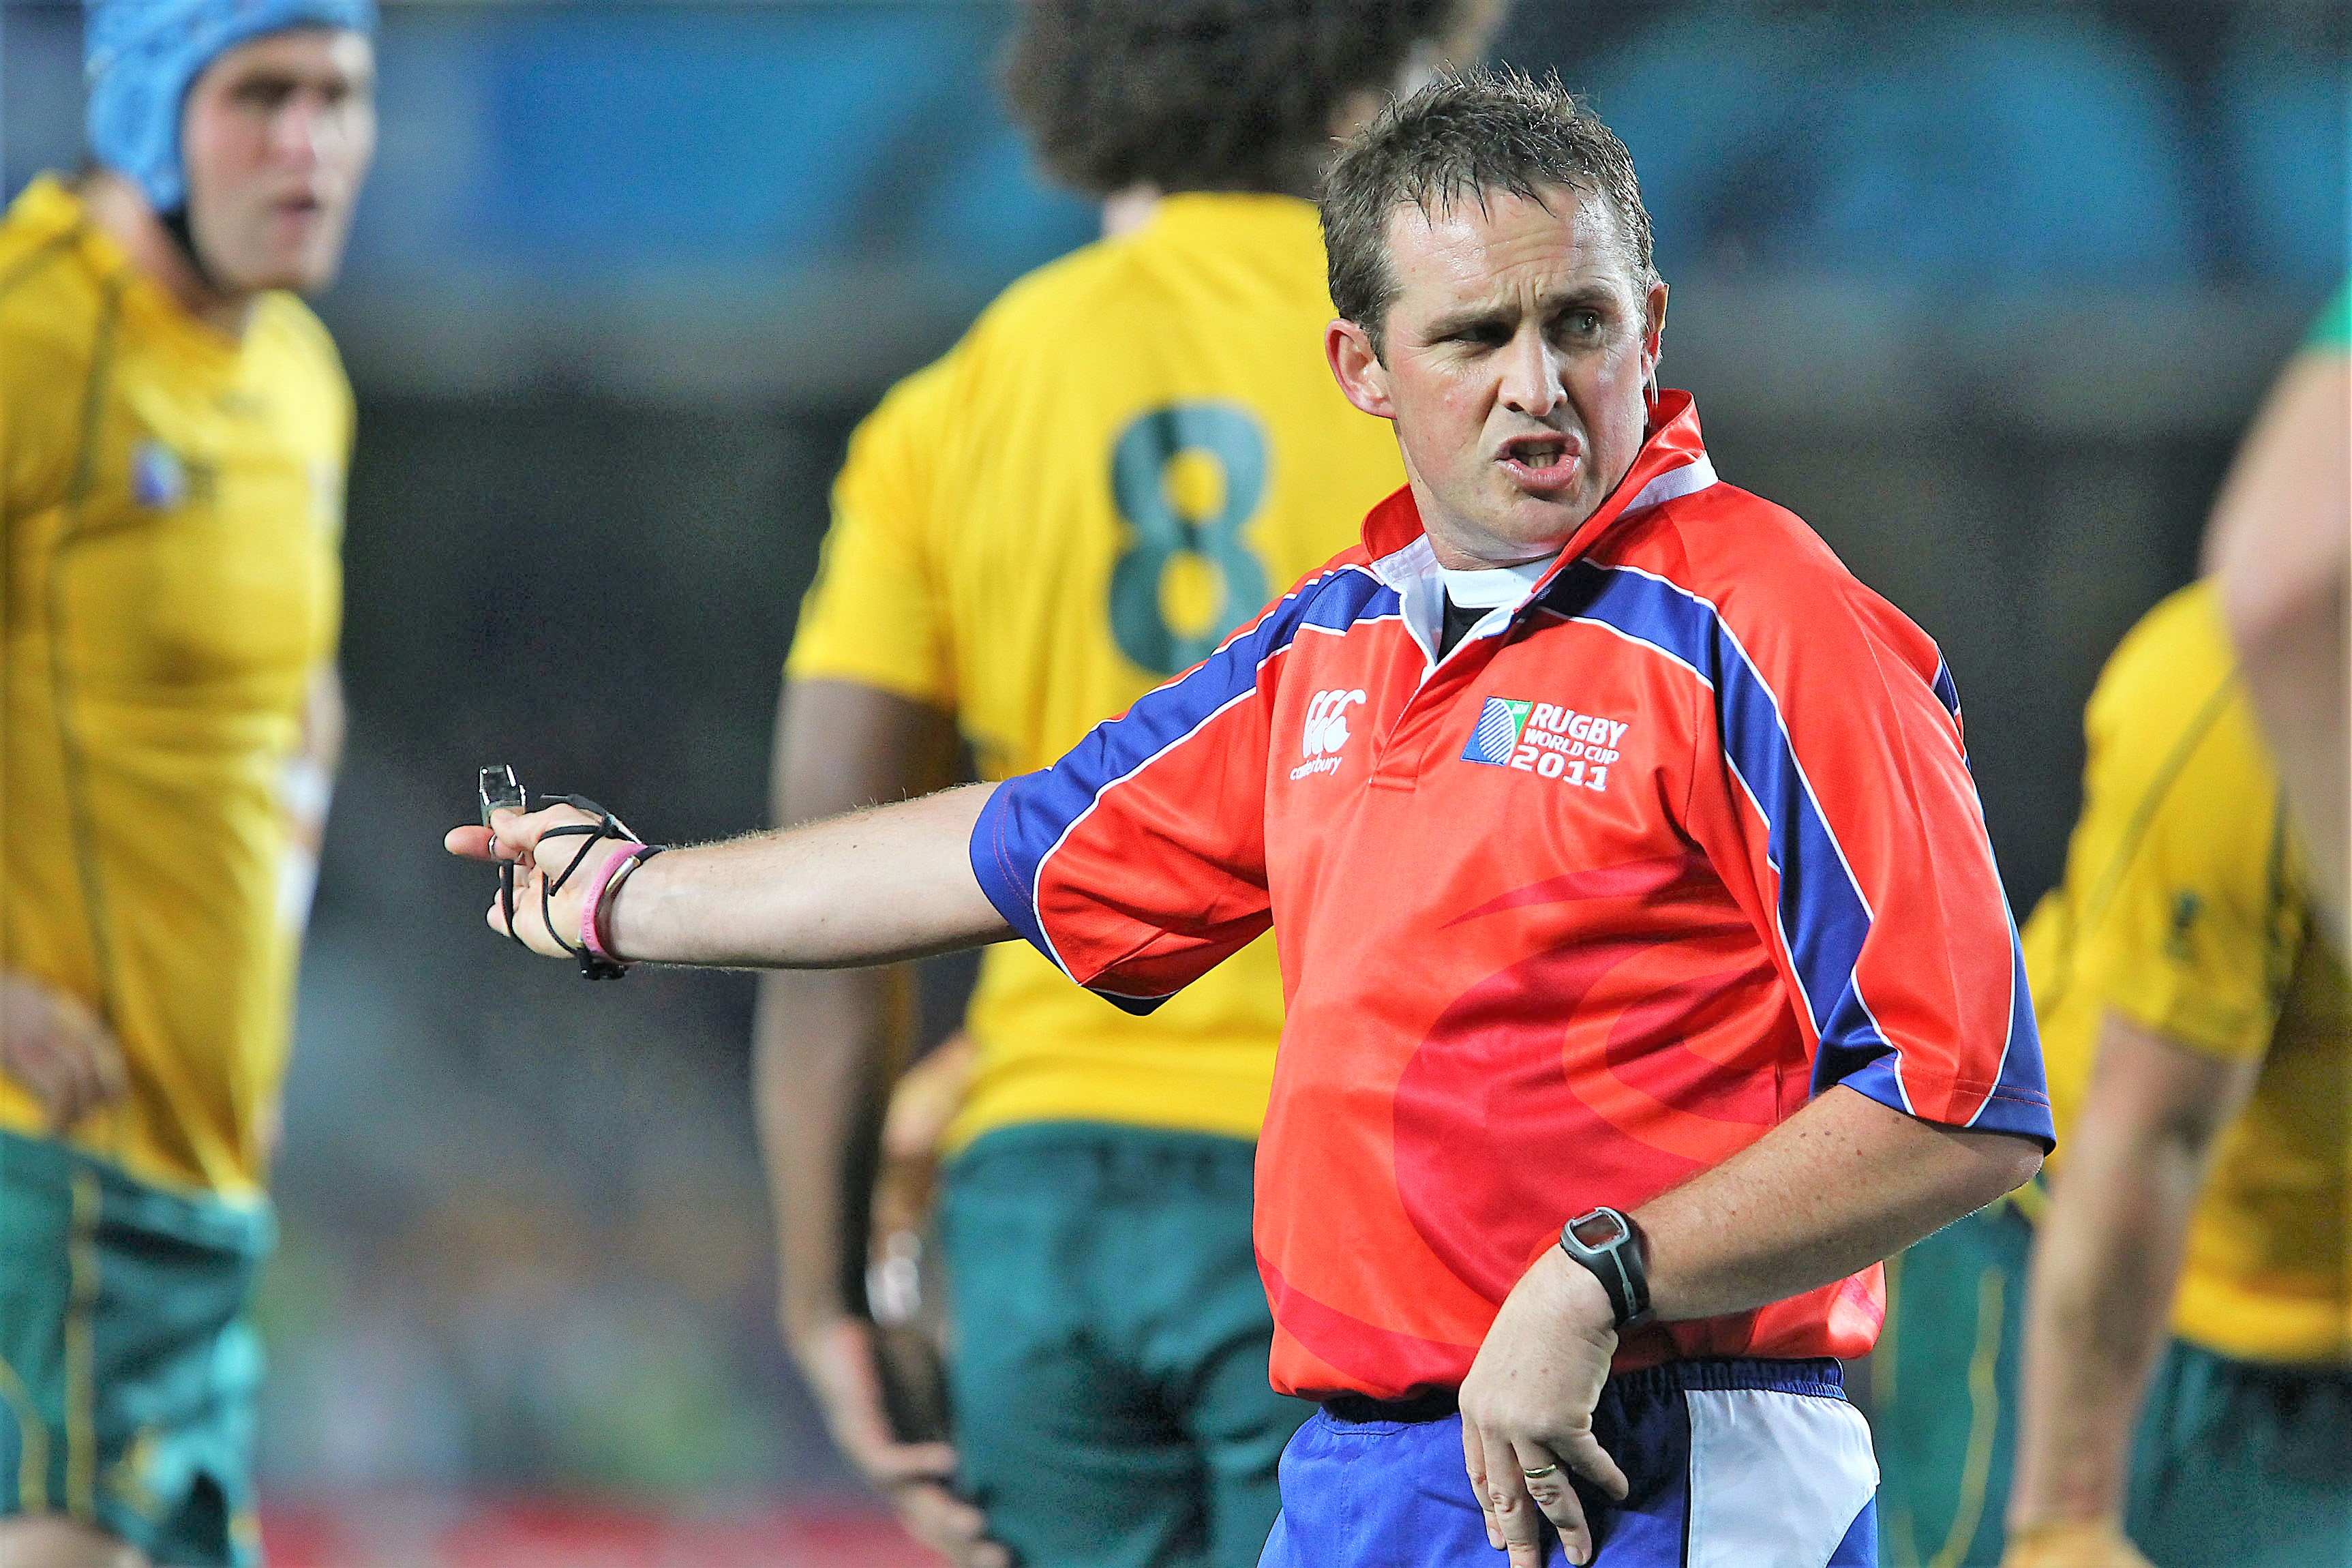 Bryce Lawrence to mentor New Zealand's top rugby referees - NZ Herald